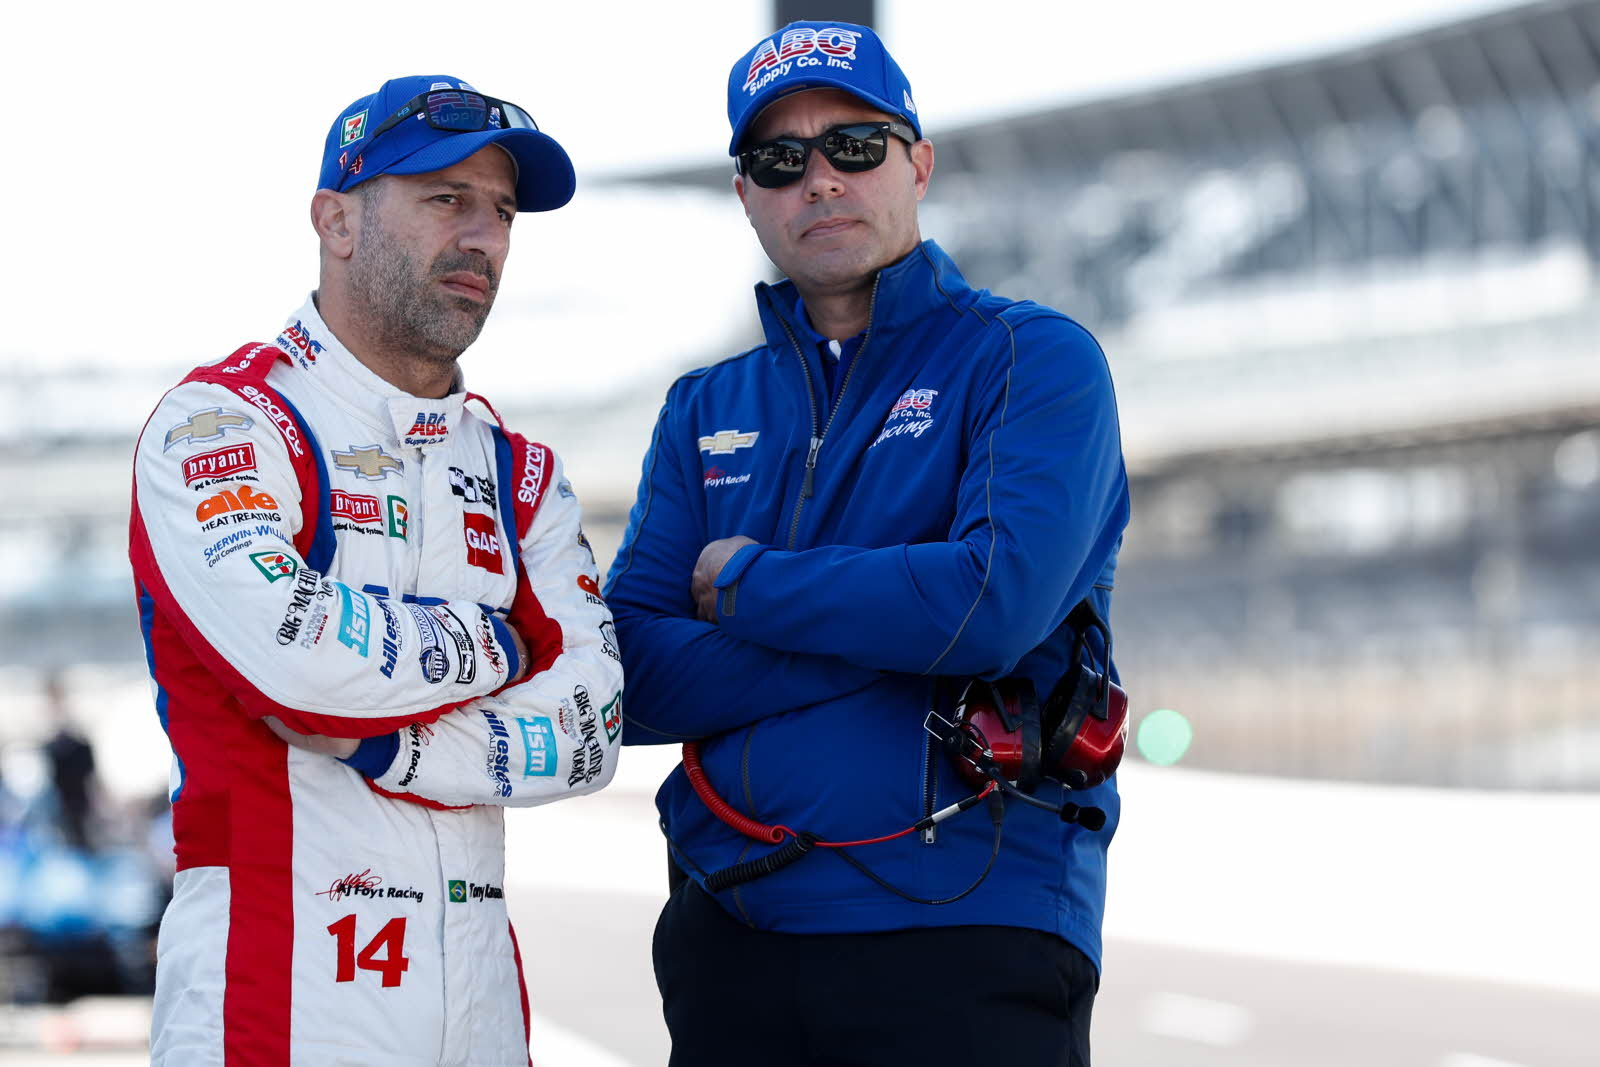 Tony Kanaan chats with team president Larry Foyt on pit lane during the open test at the Indianapolis Motor Speedway. [Photo by: Joe Skibinski]